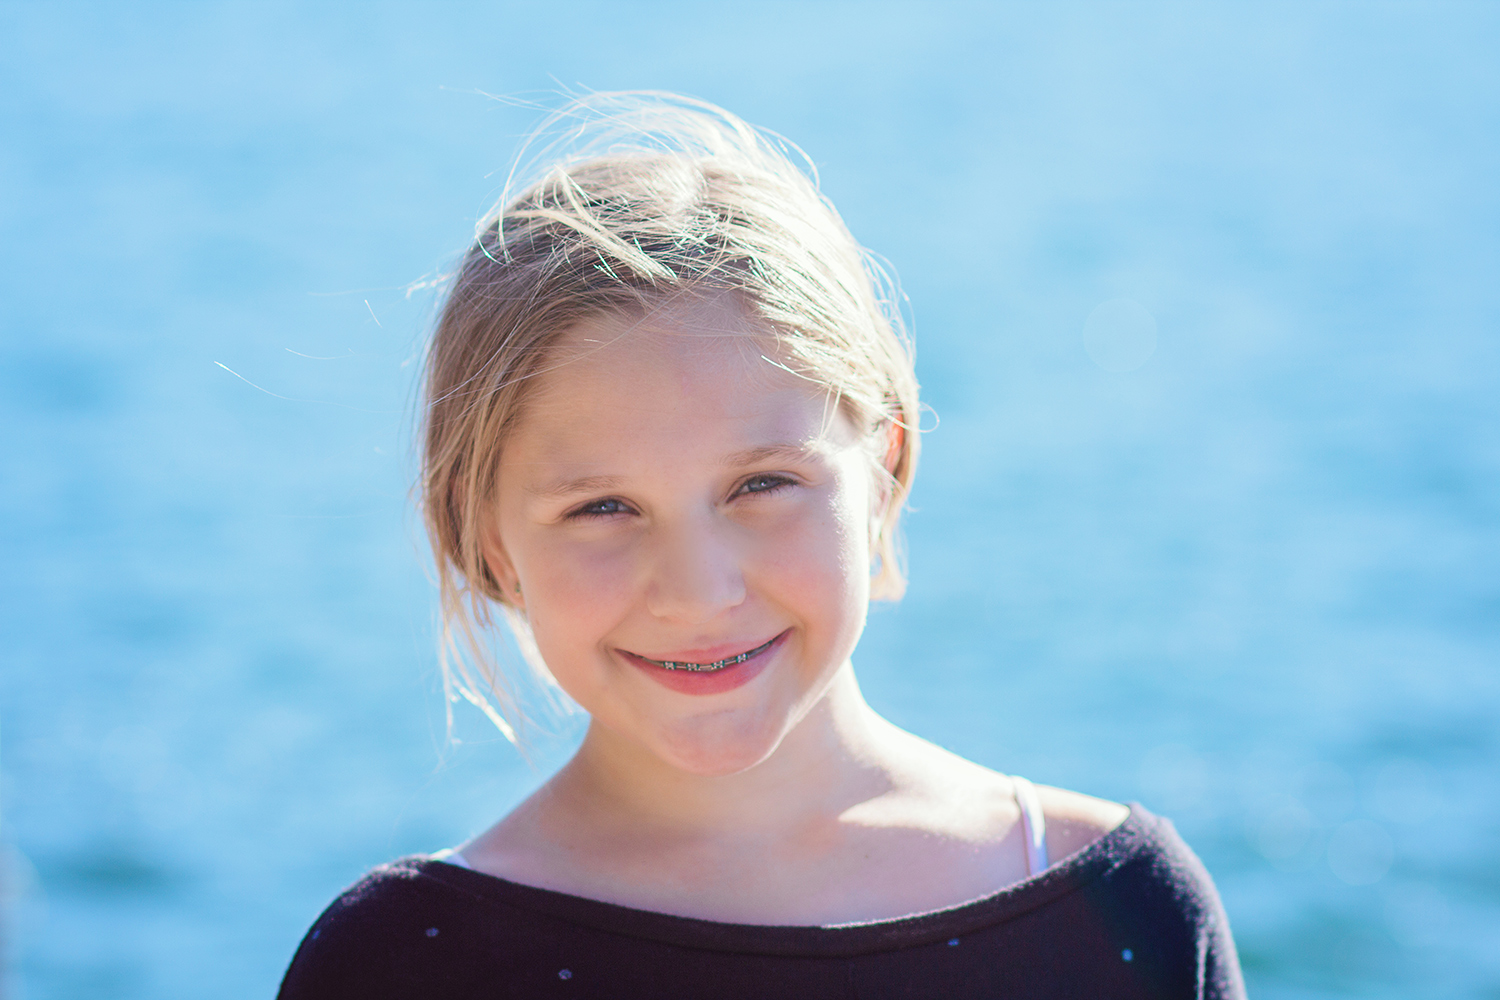 girl backlit with water in the background - 3 Tips For Photographing Kids in Harsh Light